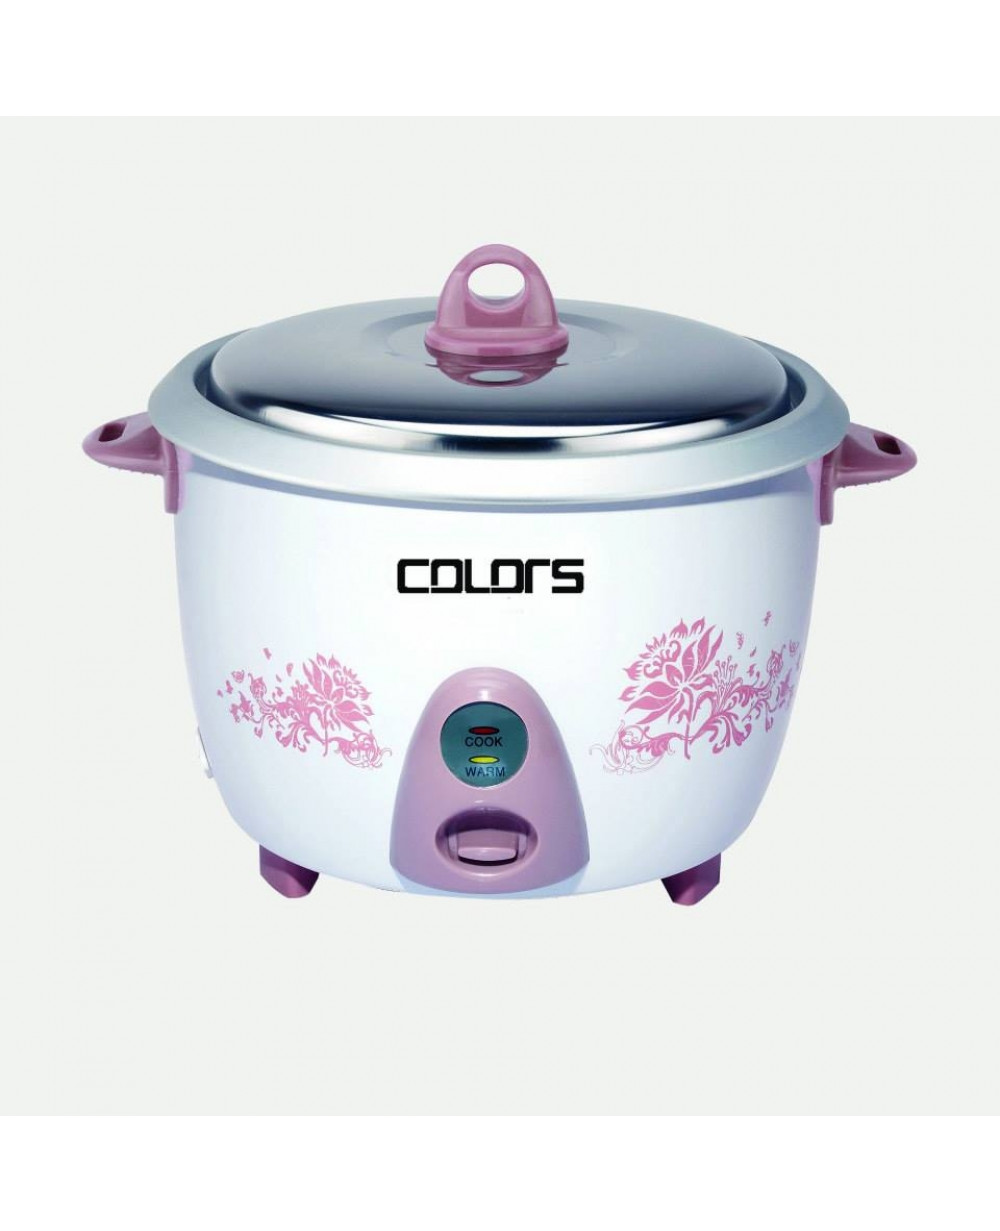 Colors Rice Cooker CL-RC188 (Normal)